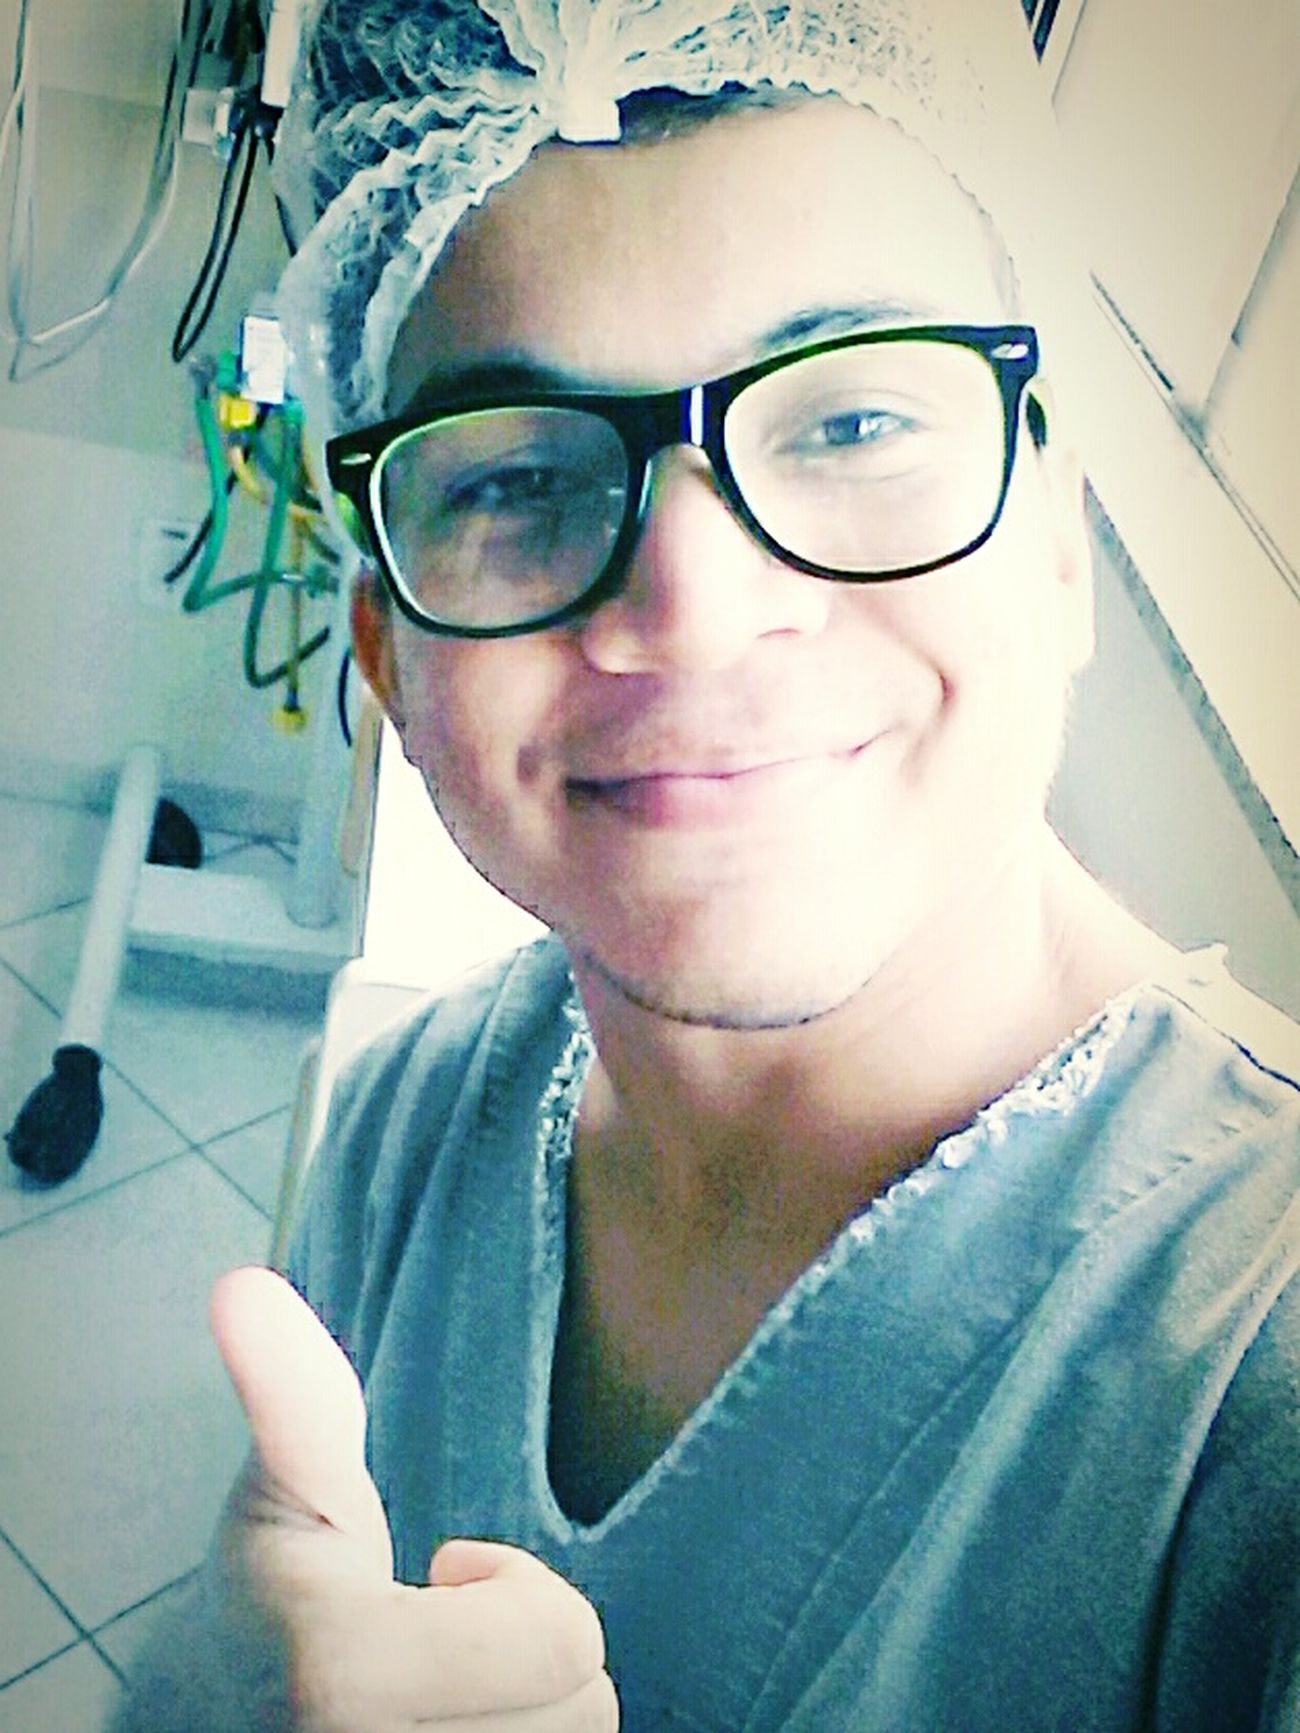 Man Enfermagem Love ♥ Uti Selfie ✌ Sorriso Hot Model